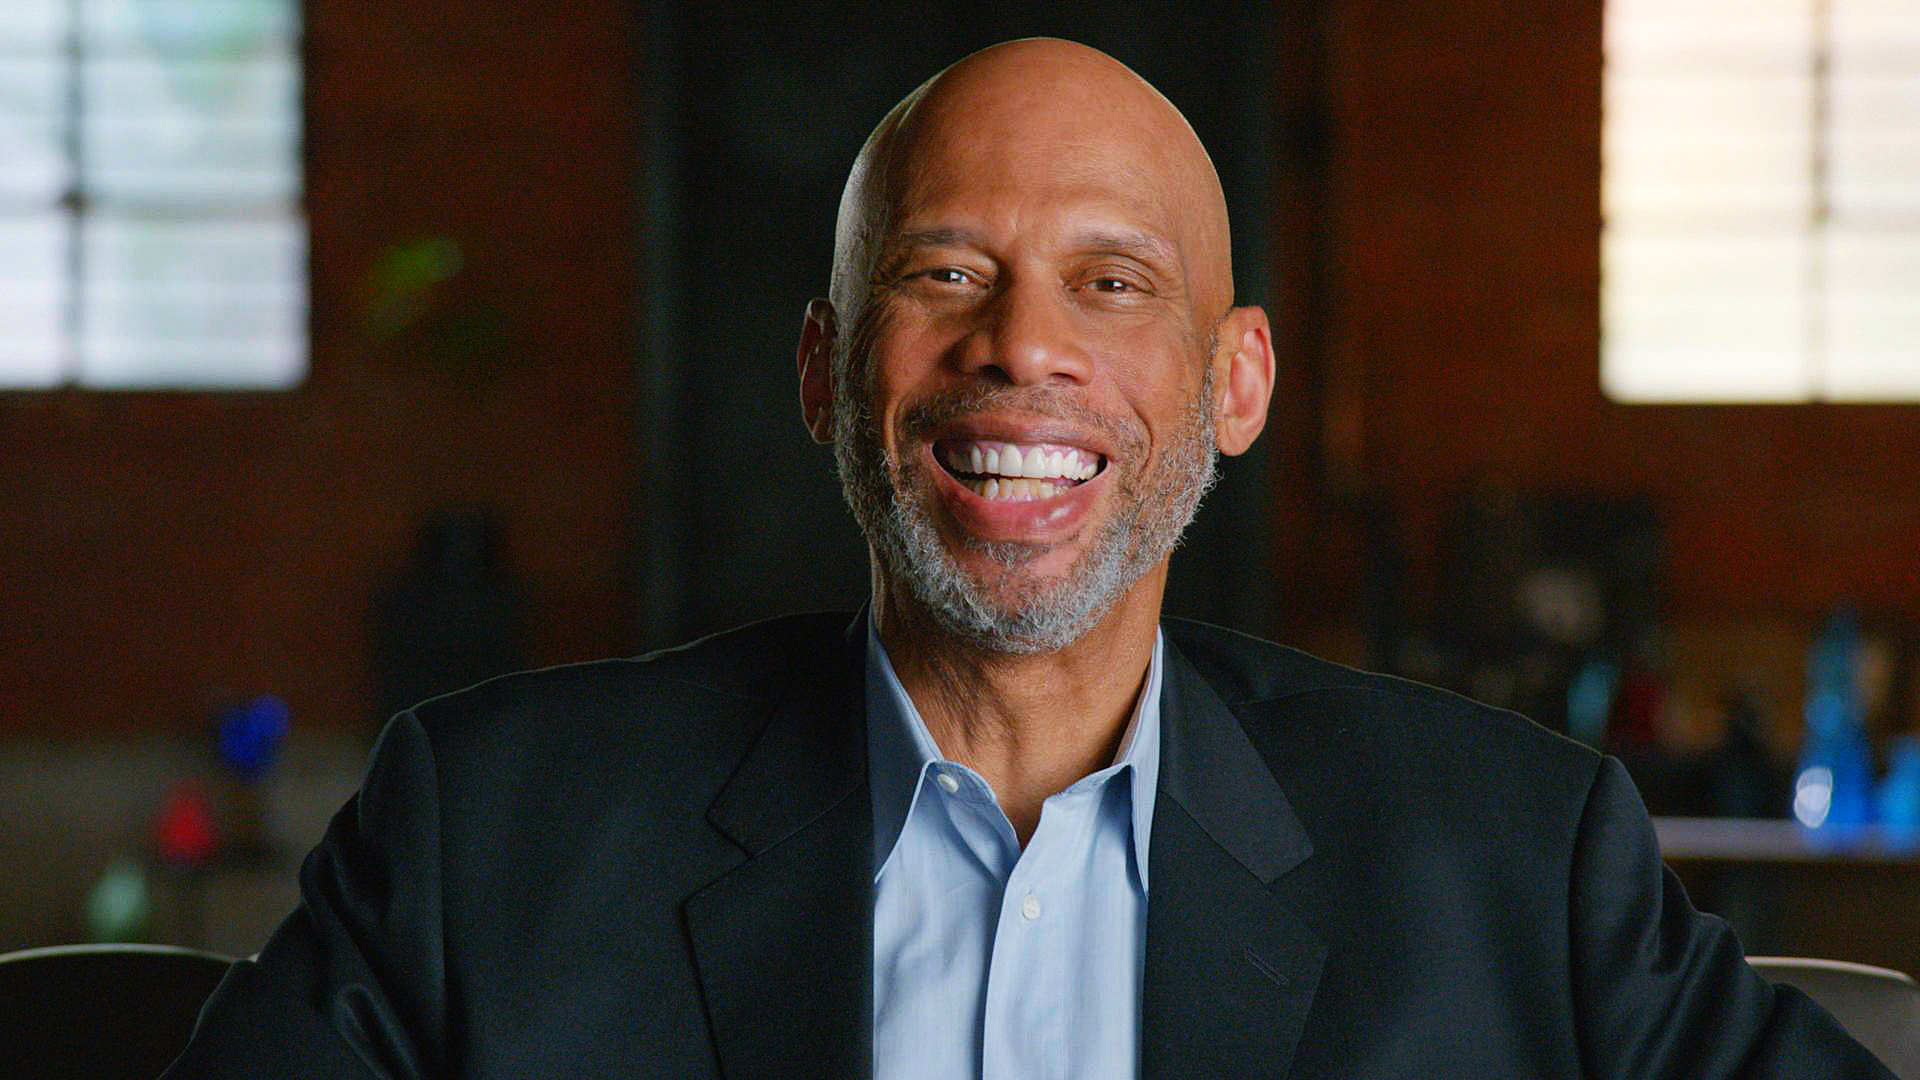 The Overhead Compartment with Kareem Abdul-Jabbar2